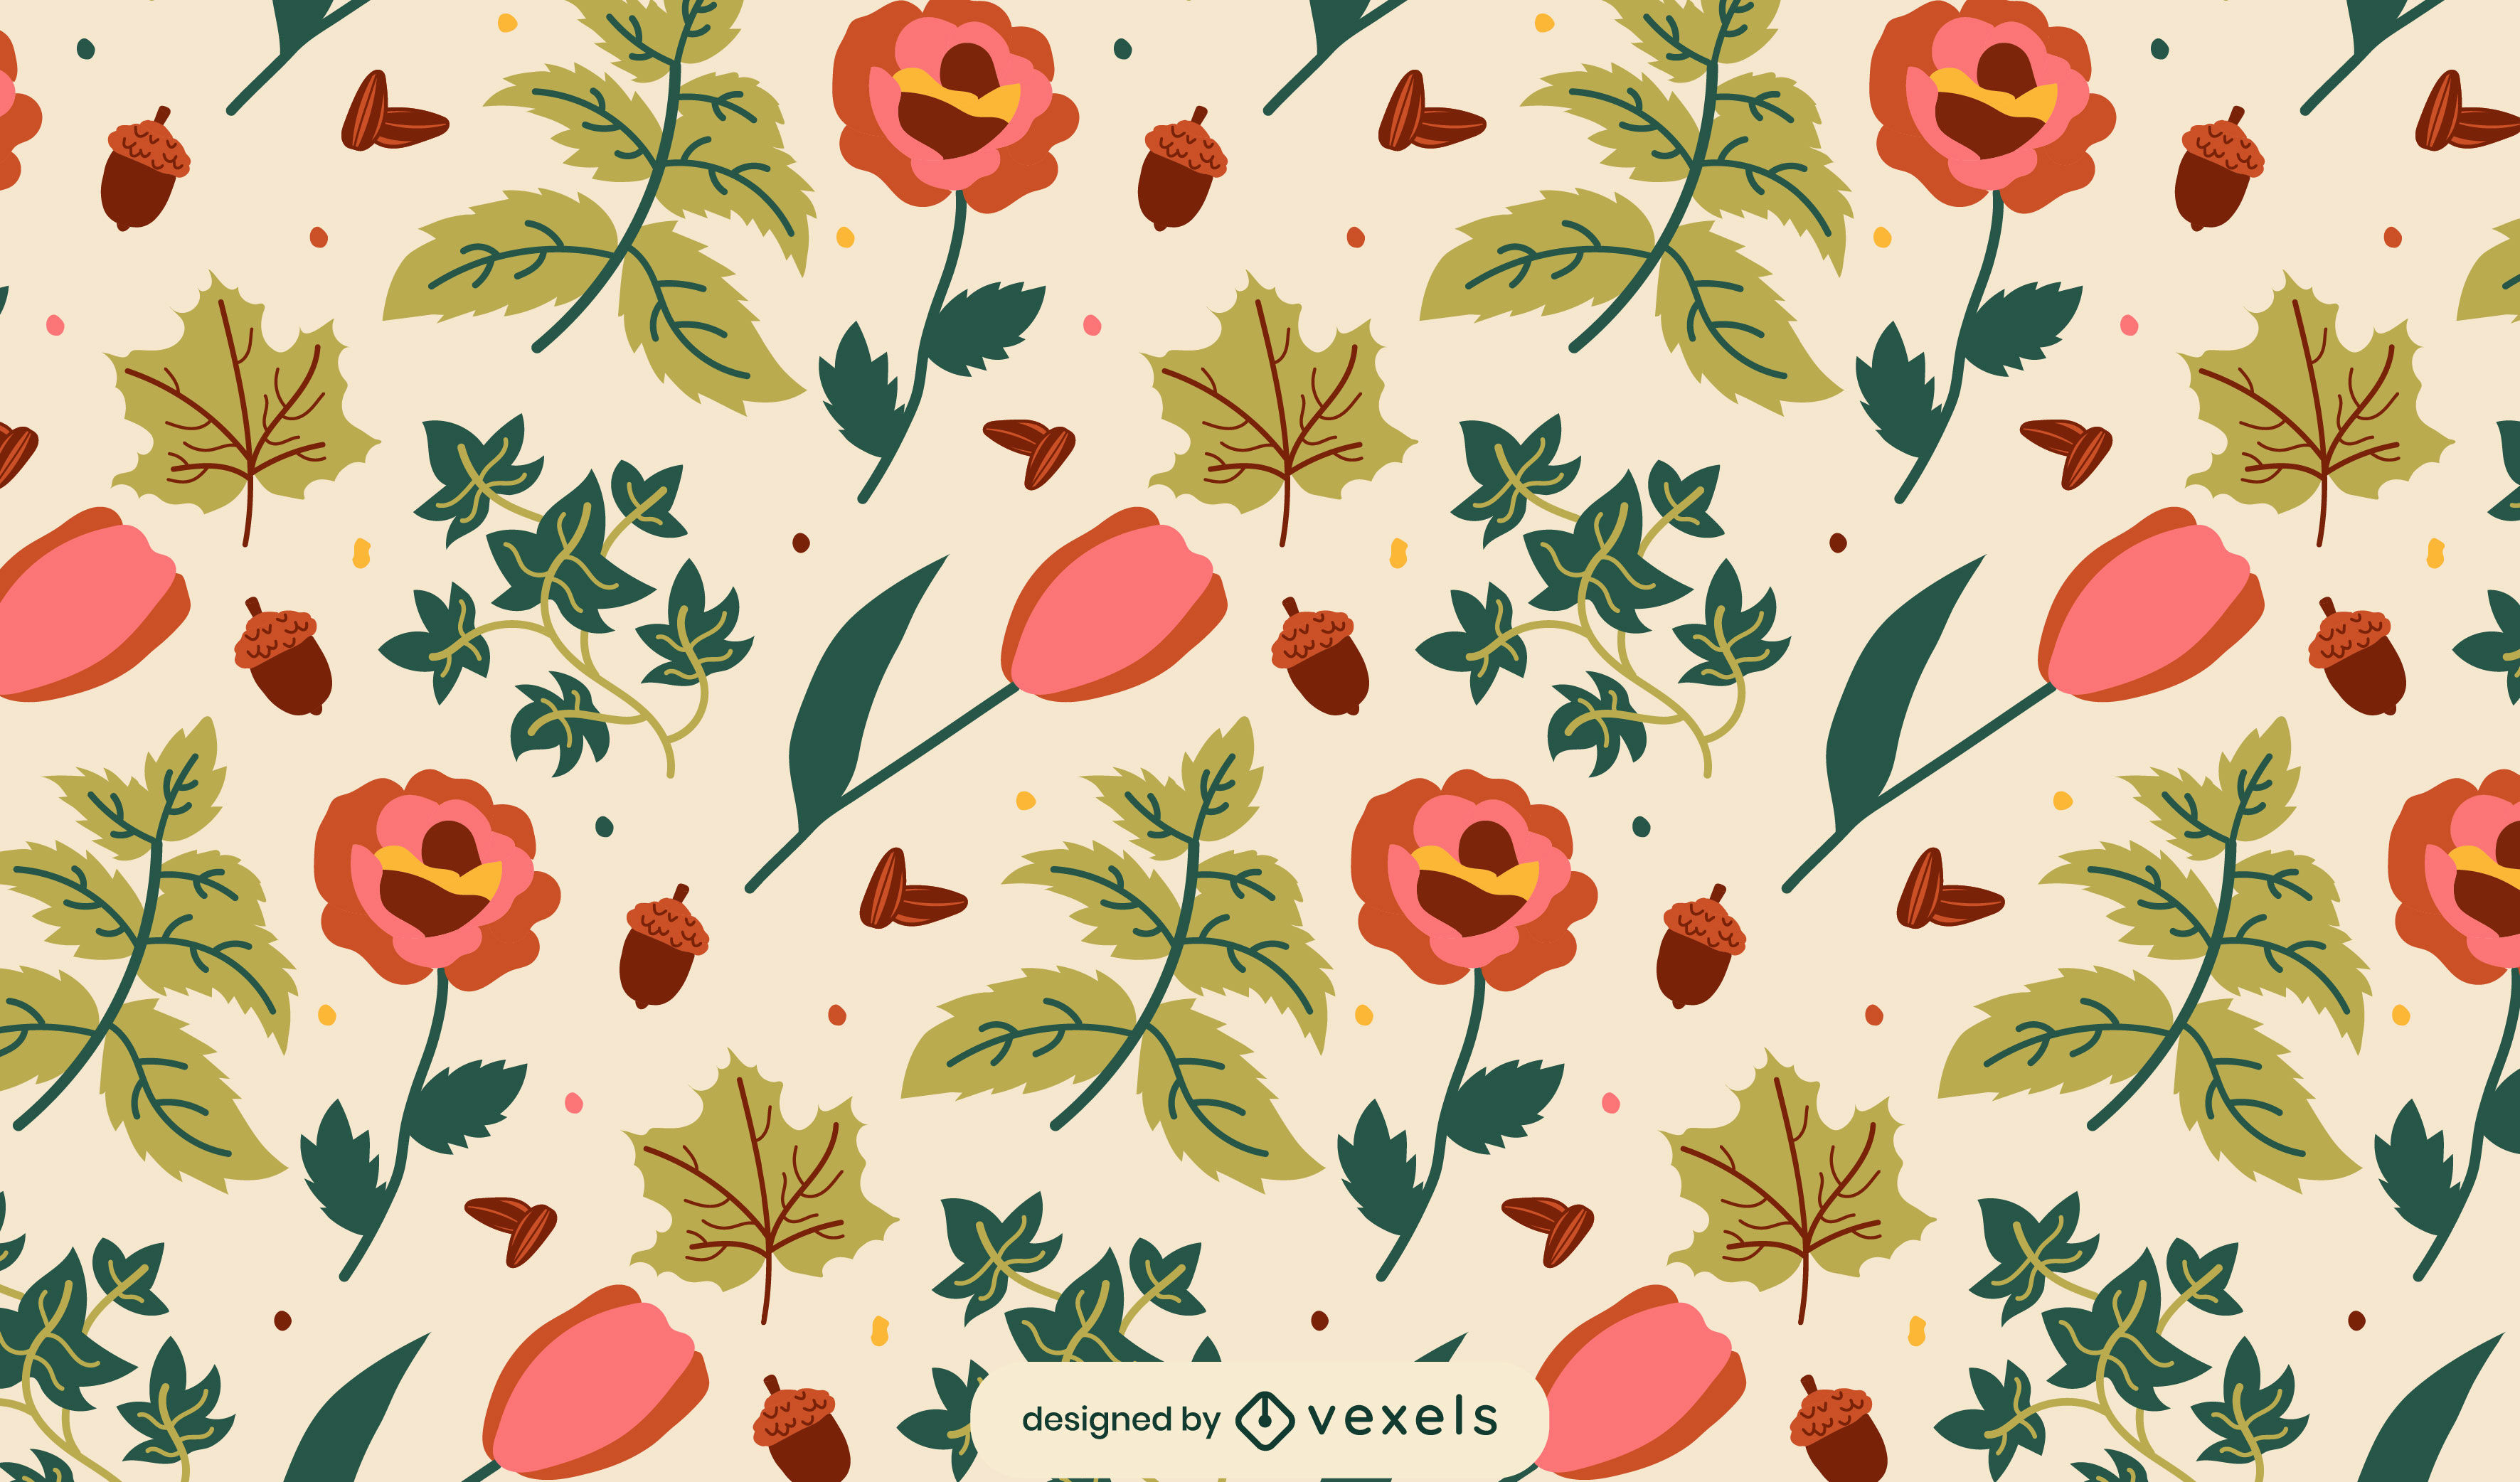 Flowers and leaves flat pattern